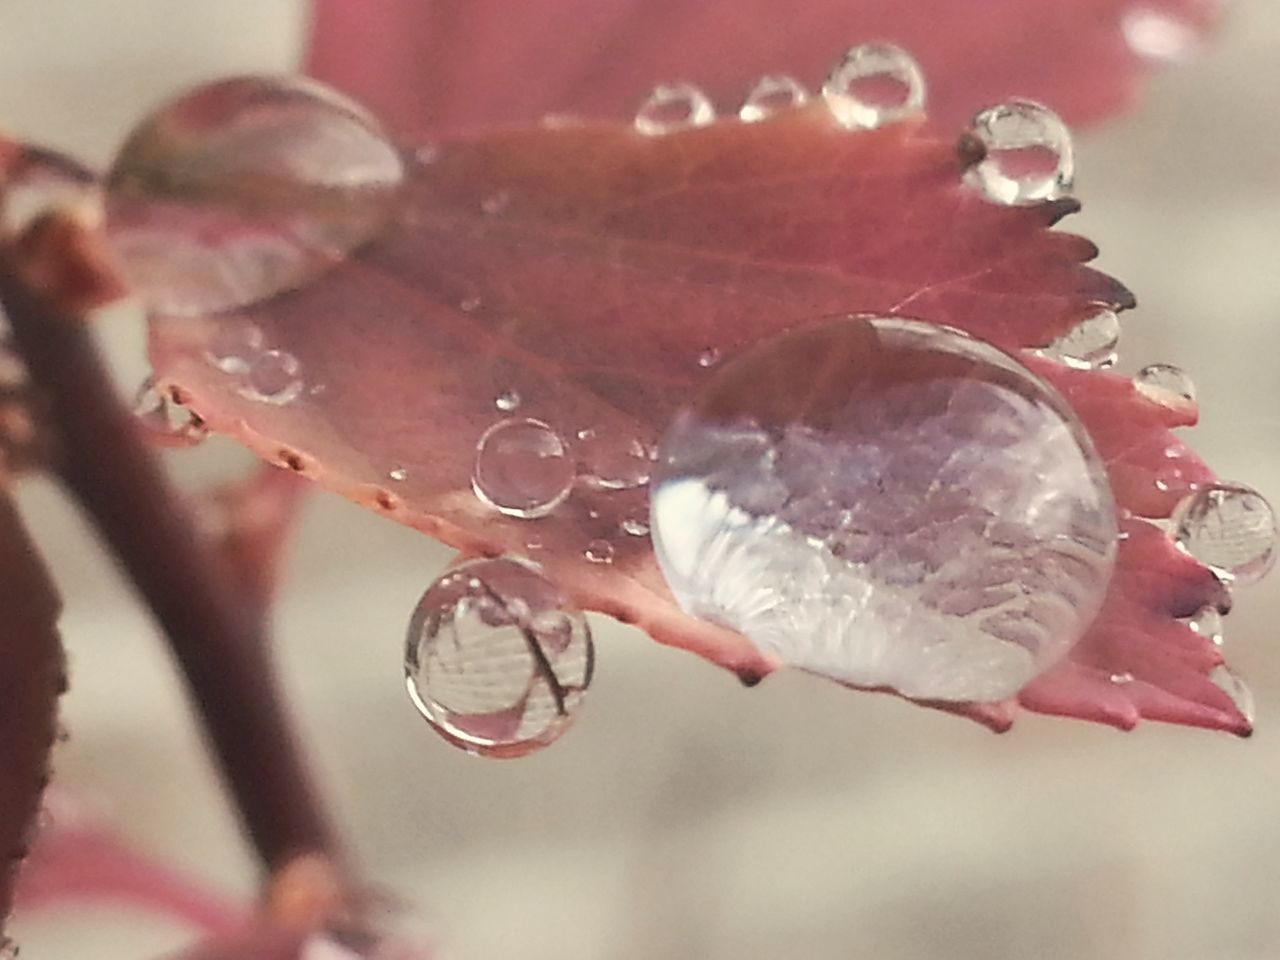 Just going through my roll... Appreciate The Little Things In Life Drops Drops Of Water Droplets Droplets On Leaves Water Globe Fall Leaves Rainy Weather Macro Macro Nature Nature Is Art Natural Phenomenon | Focus On Foreground Close-up Fragility Water Motion Nature No People Day Outdoors